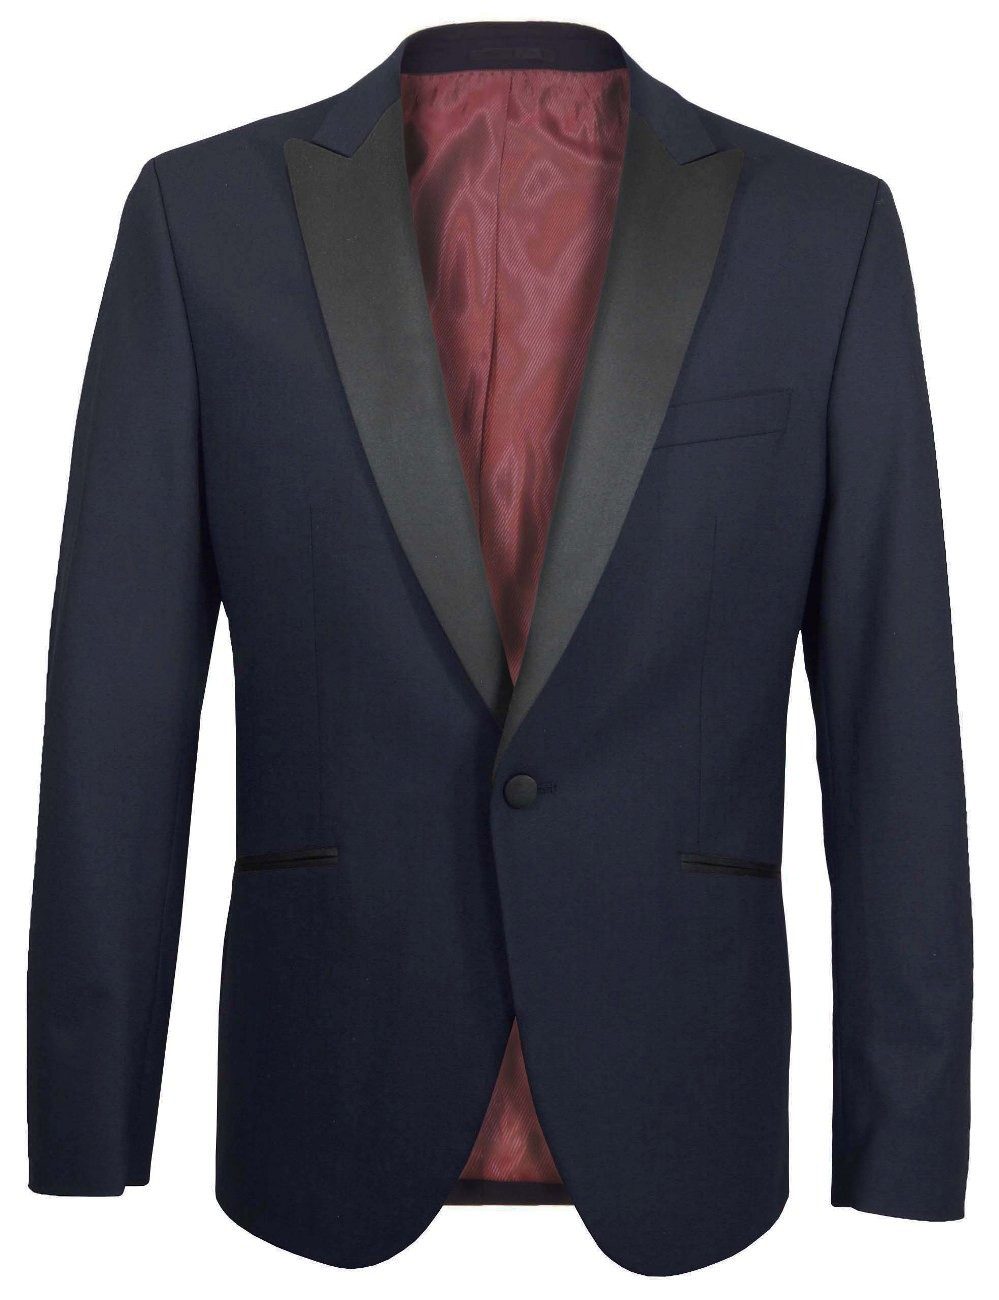 Wedding mens suit dress jacket blue